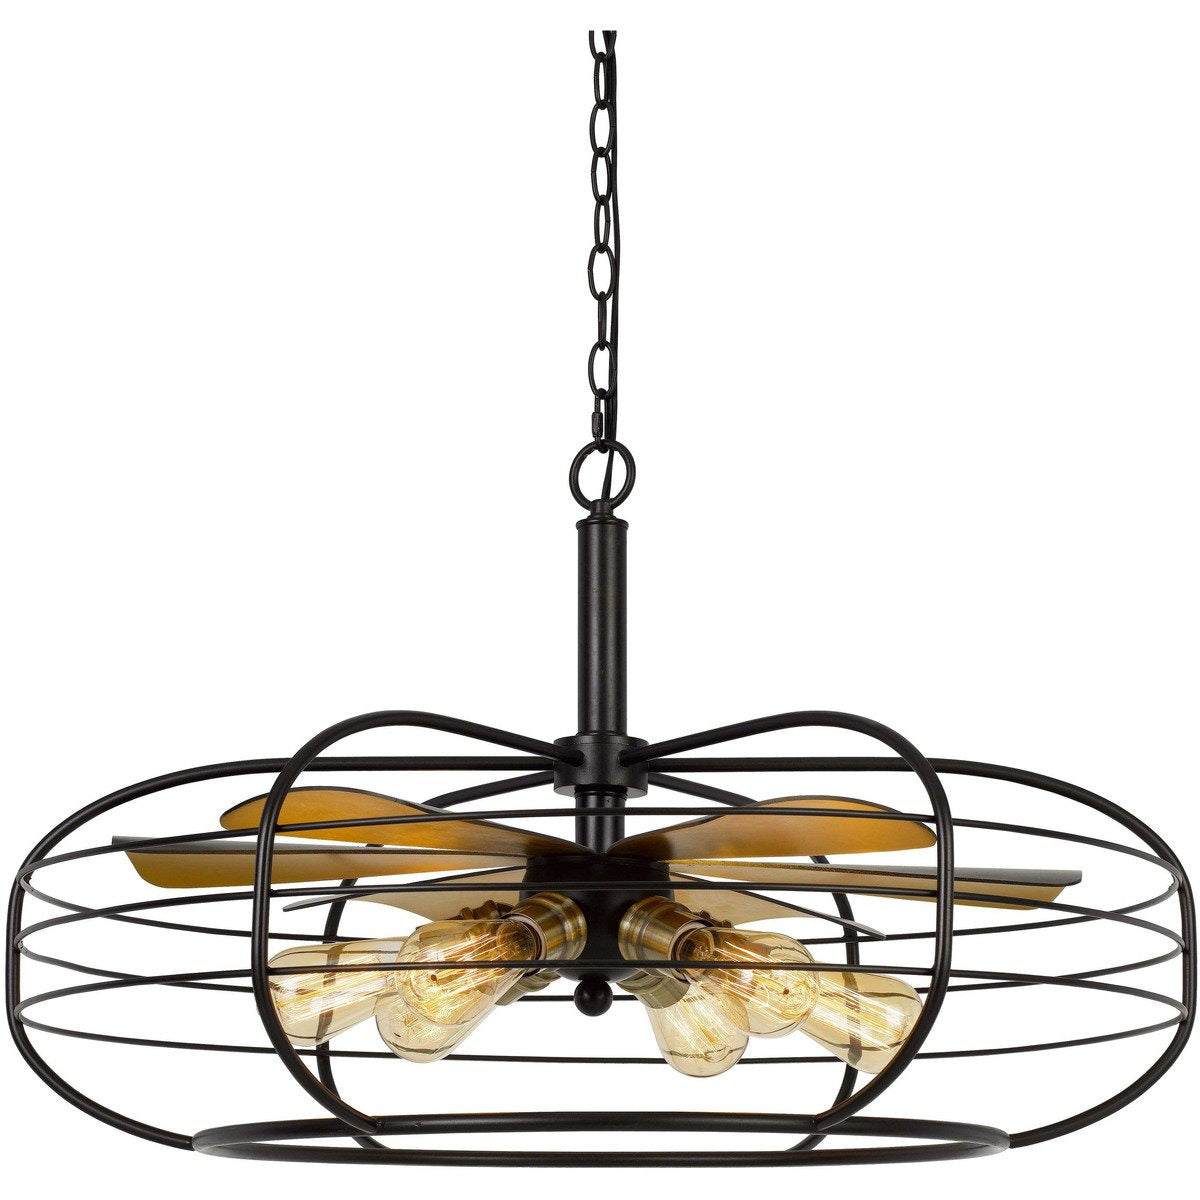 Chandeliers & Pendants - Circular Cage Design Metal Chandelier With Fan Blade Accent, Black